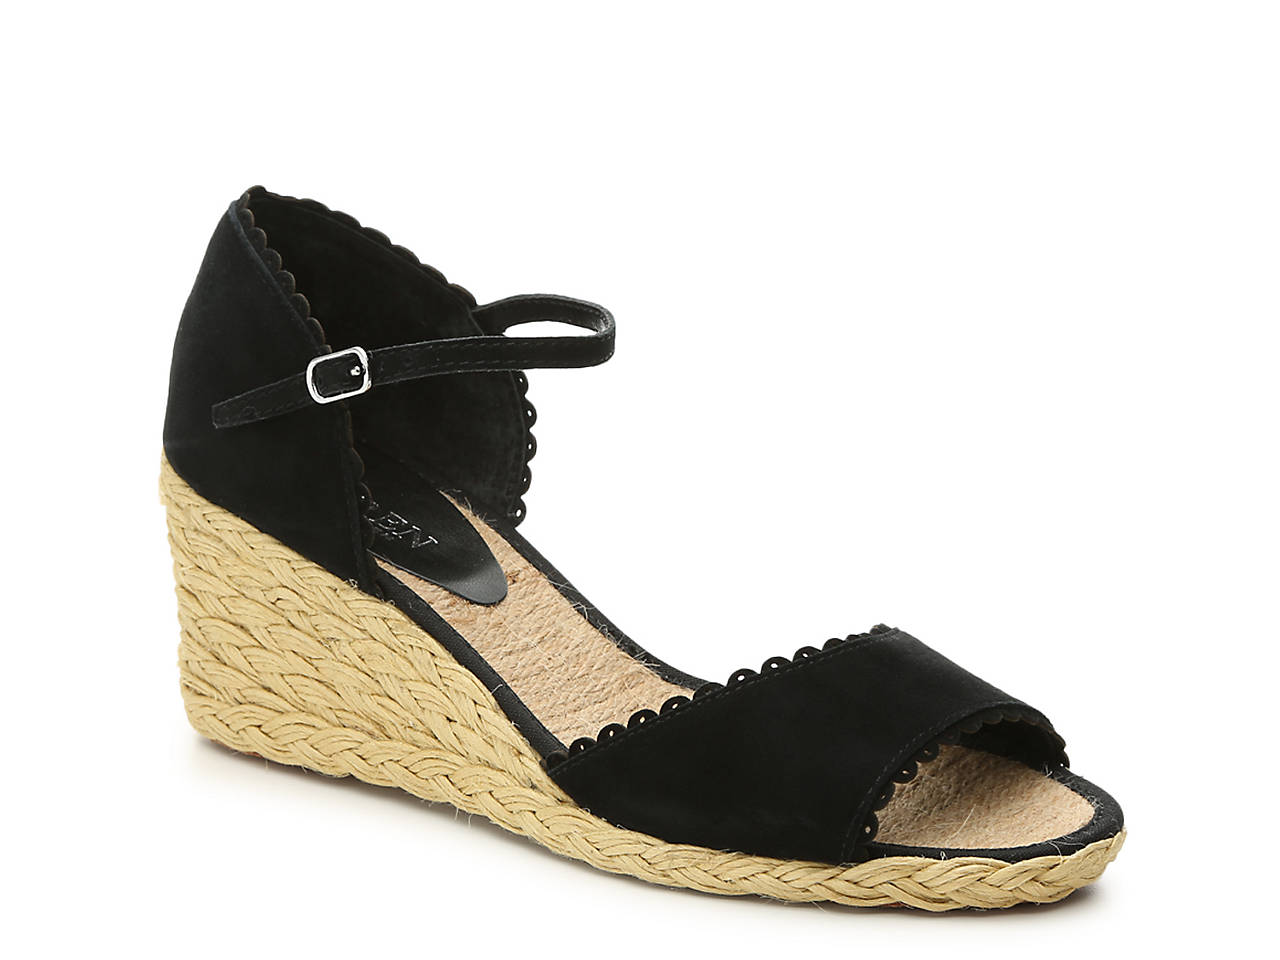 New Online Free Shipping Best Place Ralph Lauren Collection Embossed Wedge Sandals Top Quality Cheap Sale 100% Guaranteed aJVw3KL7w